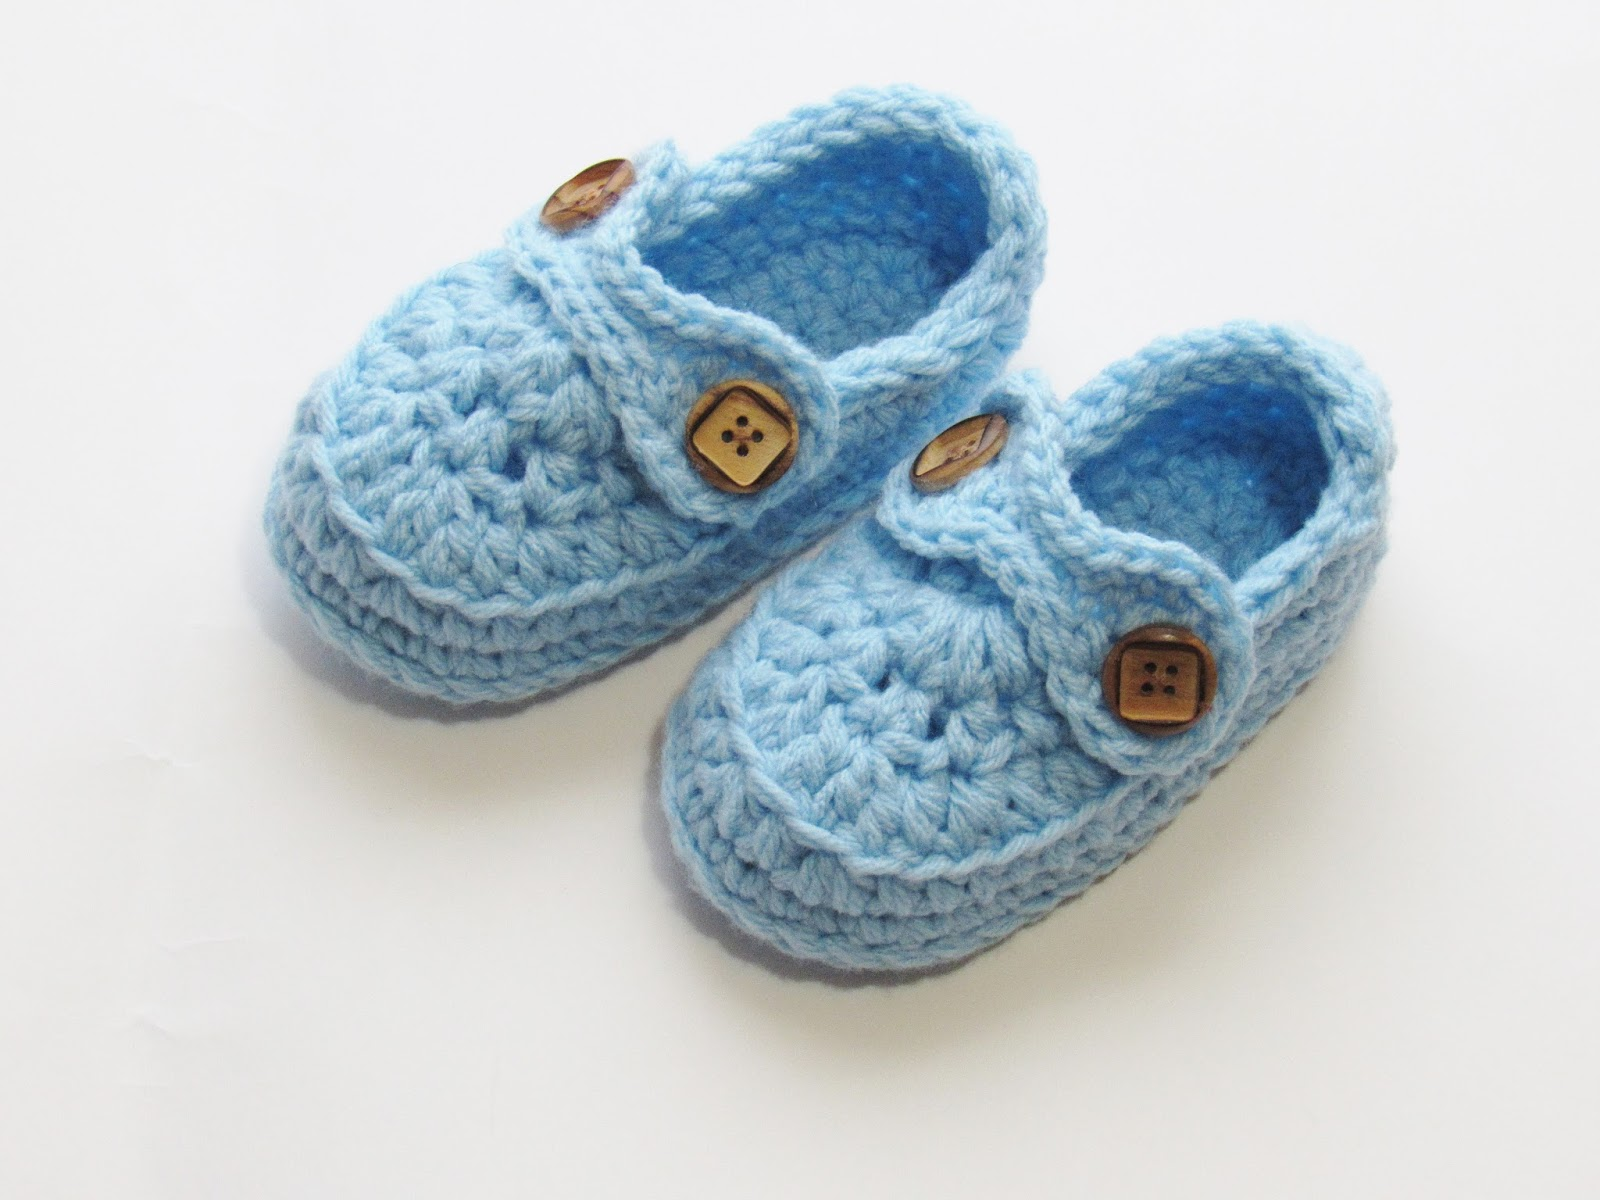 Crochet Patterns For Toddlers Slippers : Crochet Dreamz: Toddler Striders, Toddler Slippers Crochet ...